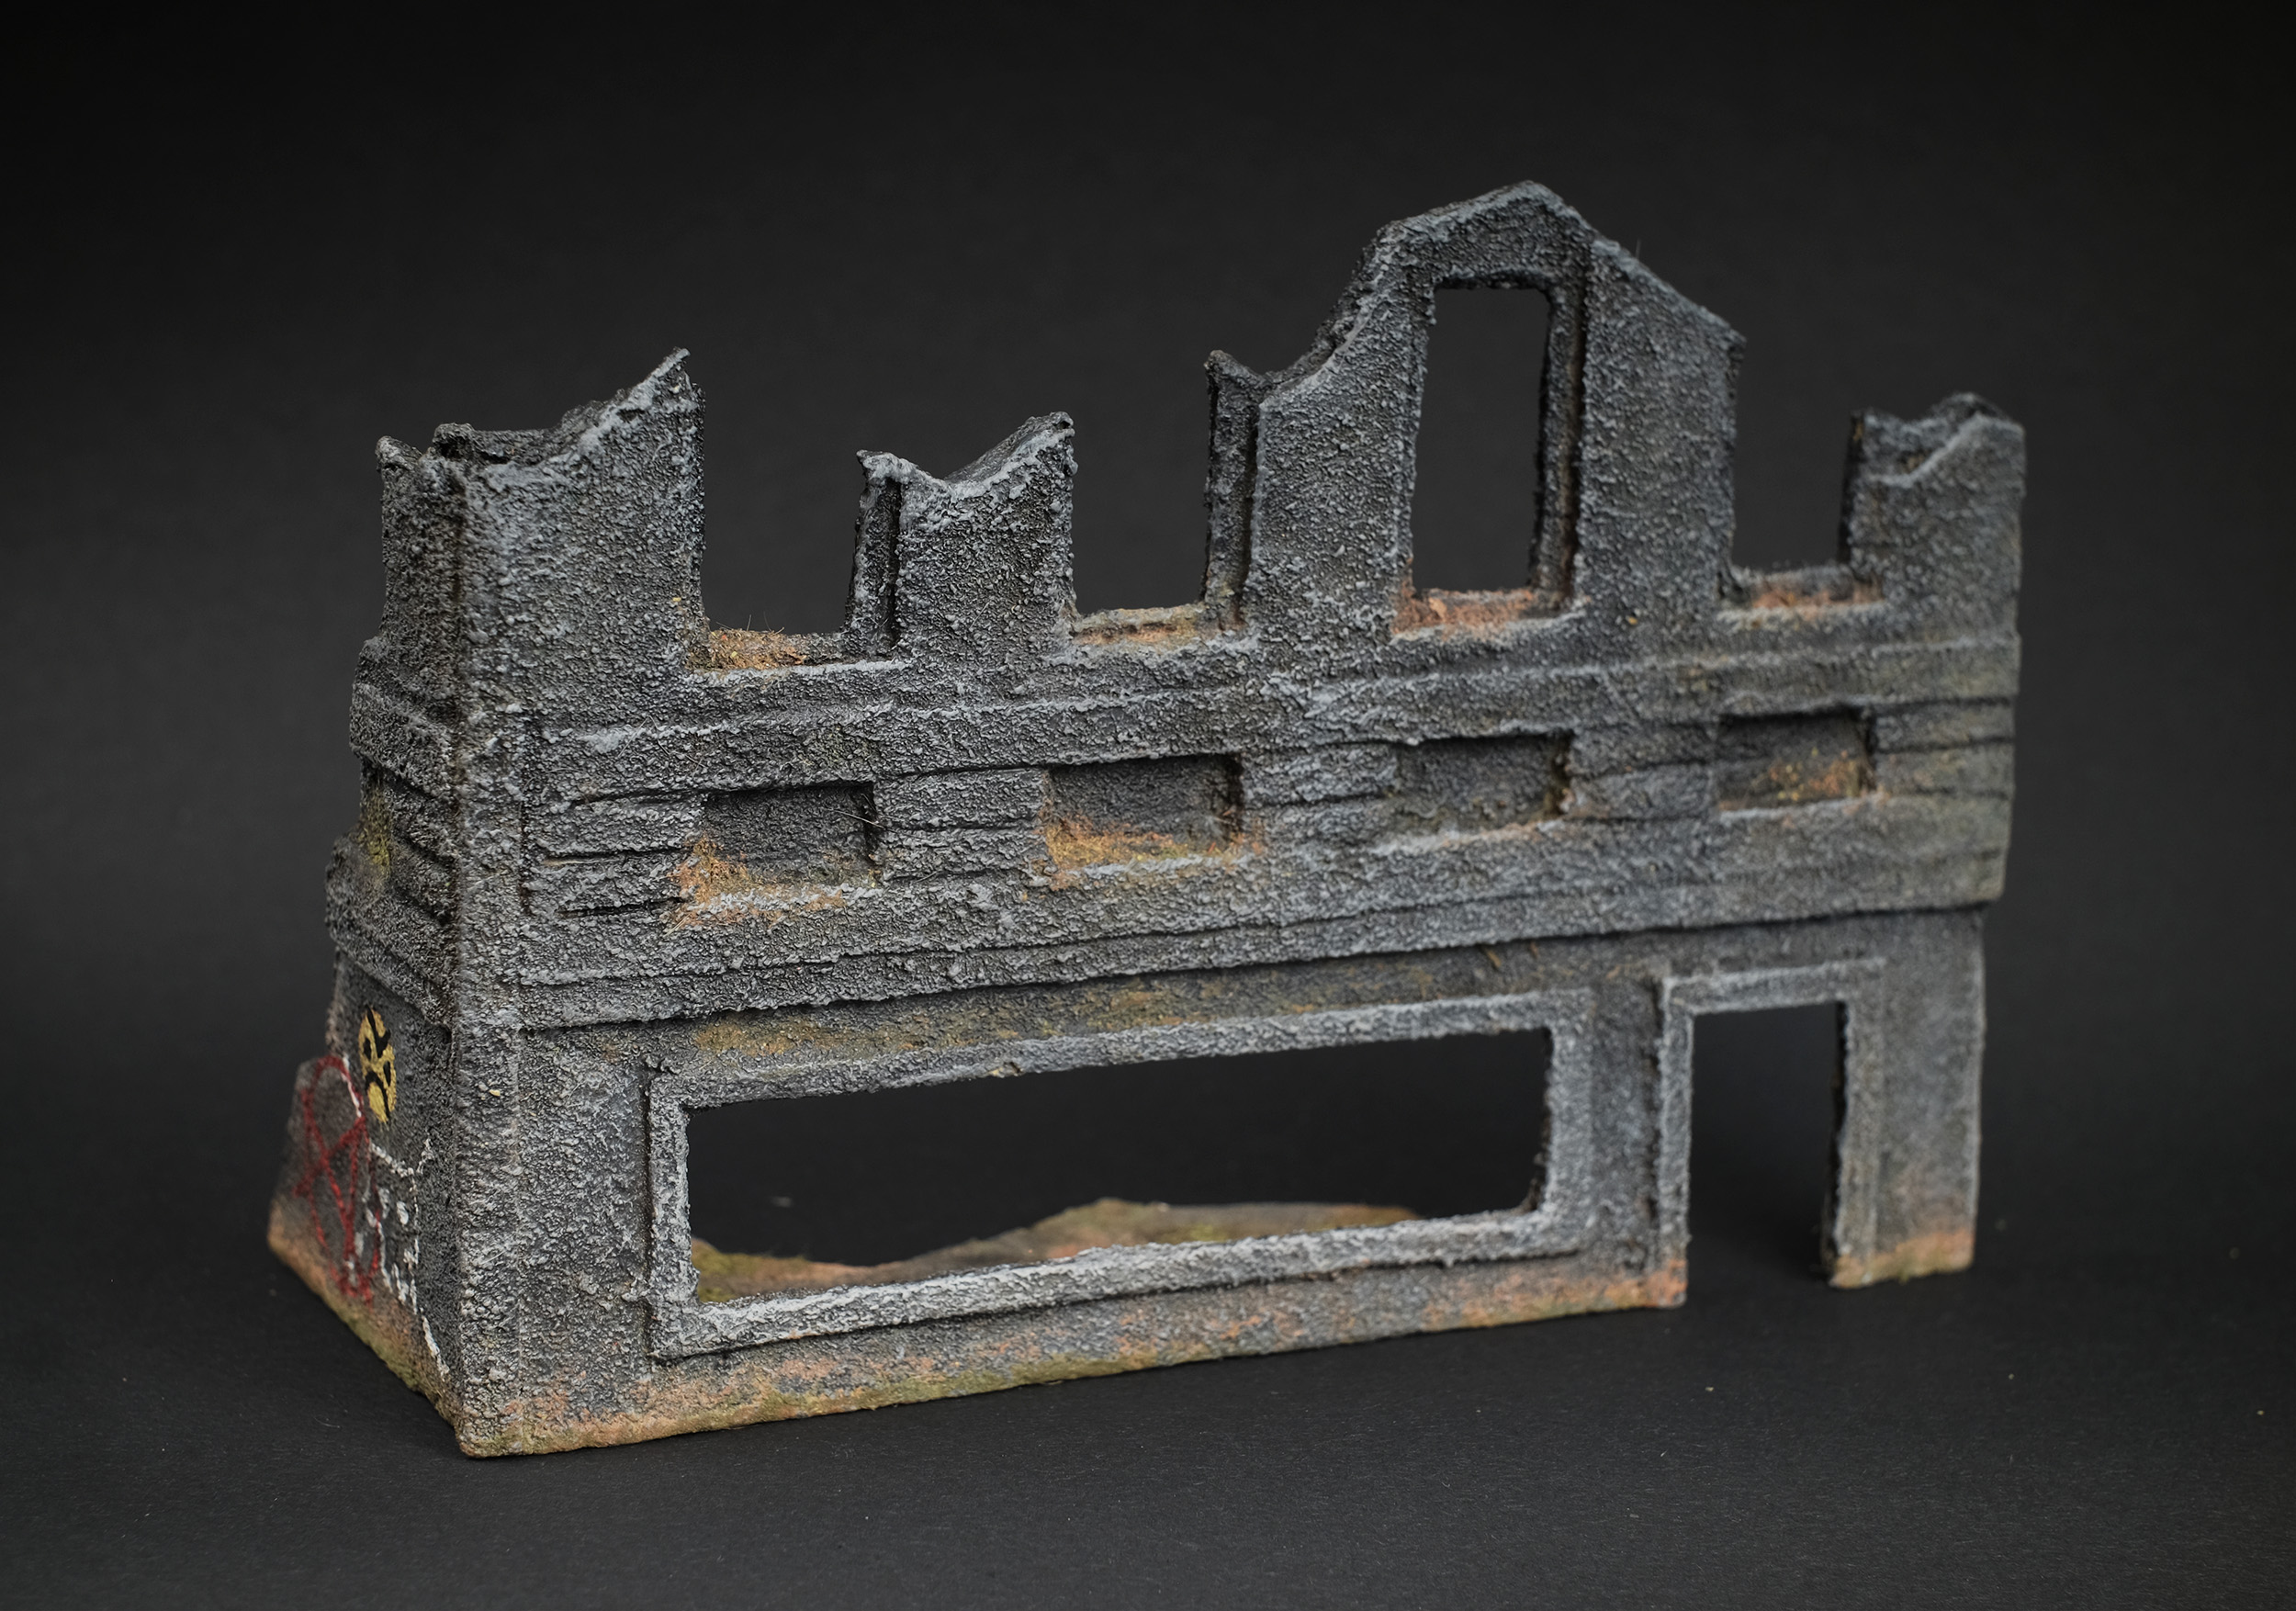 Wargaming Terrain: Ruined Building Template #1 by Miscast